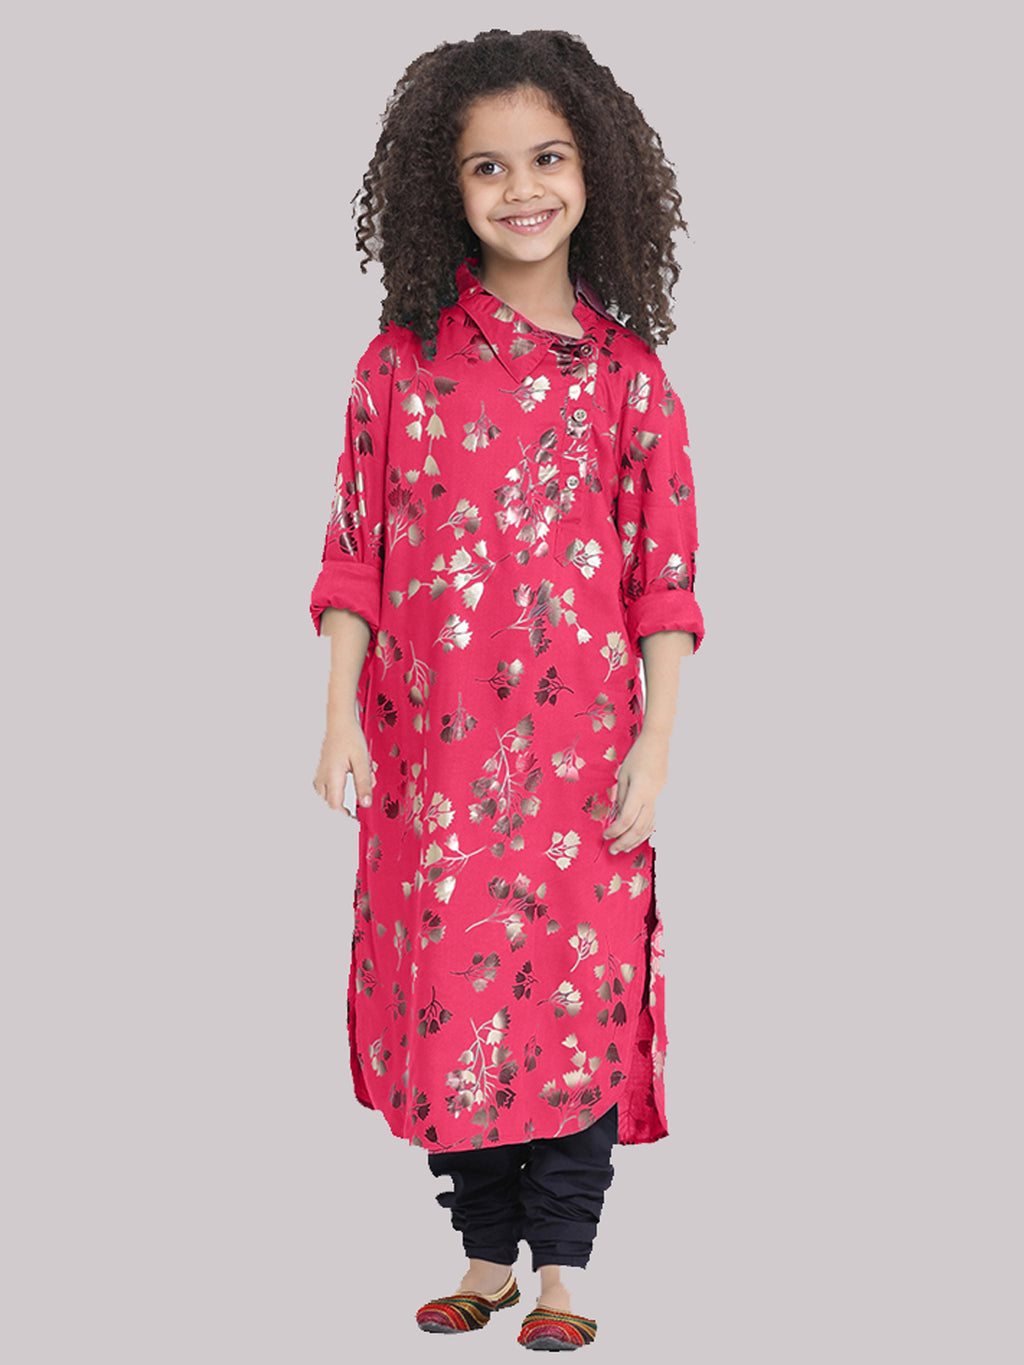 Vanni1 Kurta Pajama set for girls